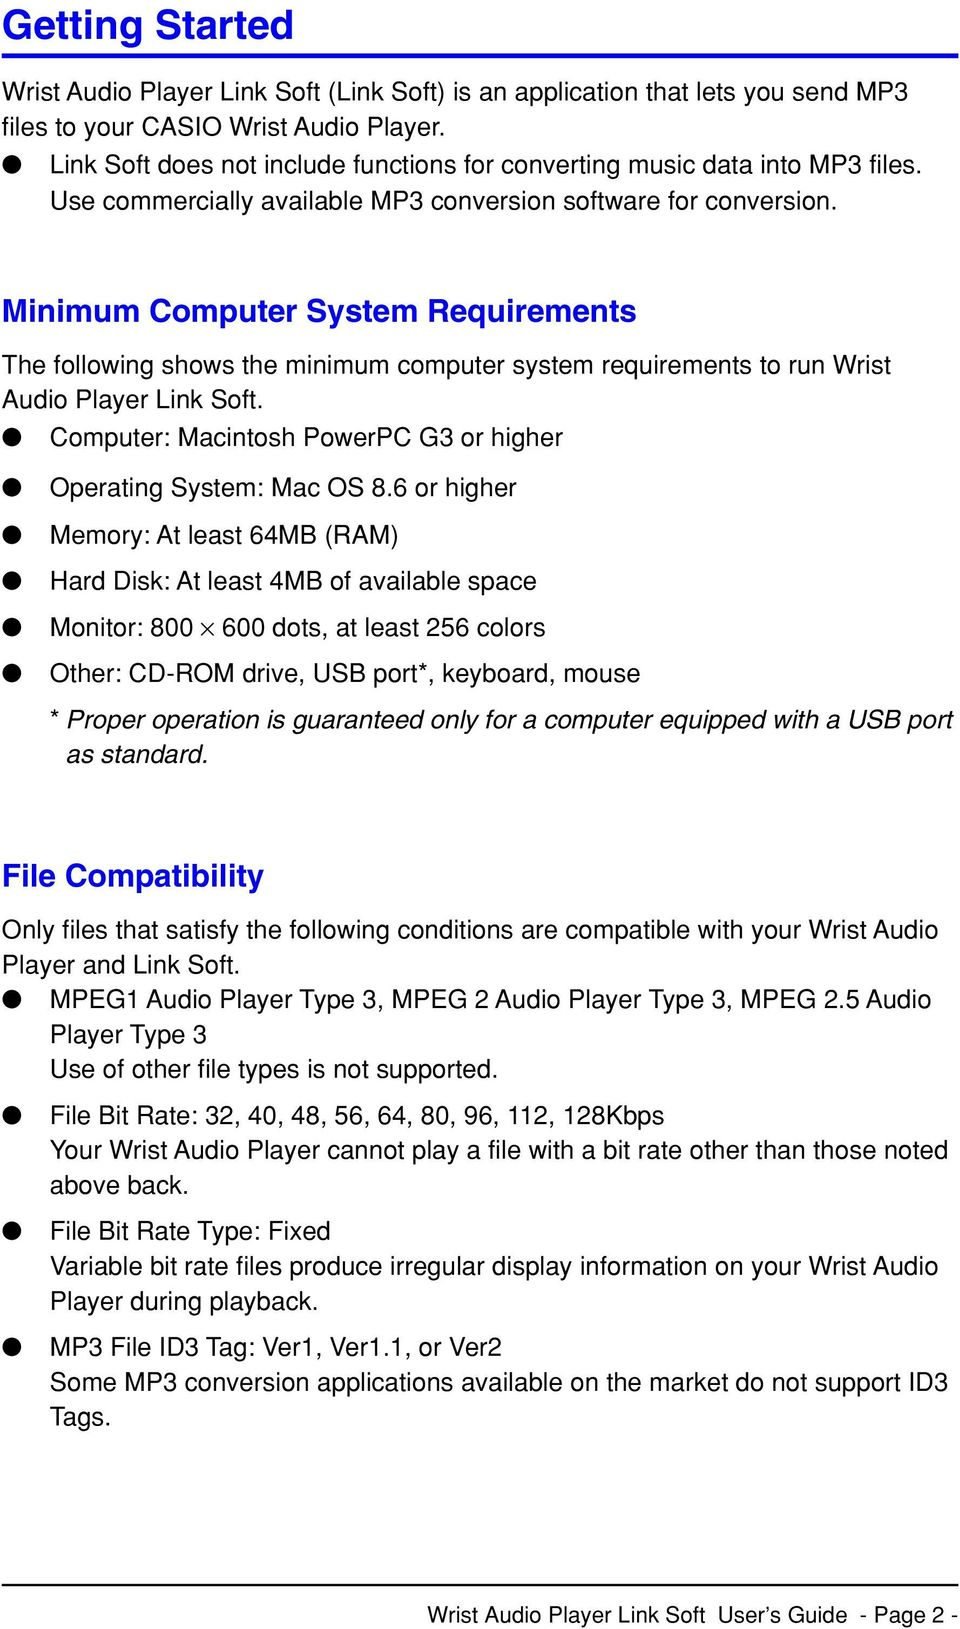 Minimum Computer System Requirements The following shows the minimum computer system requirements to run Wrist Audio Player Link Soft.